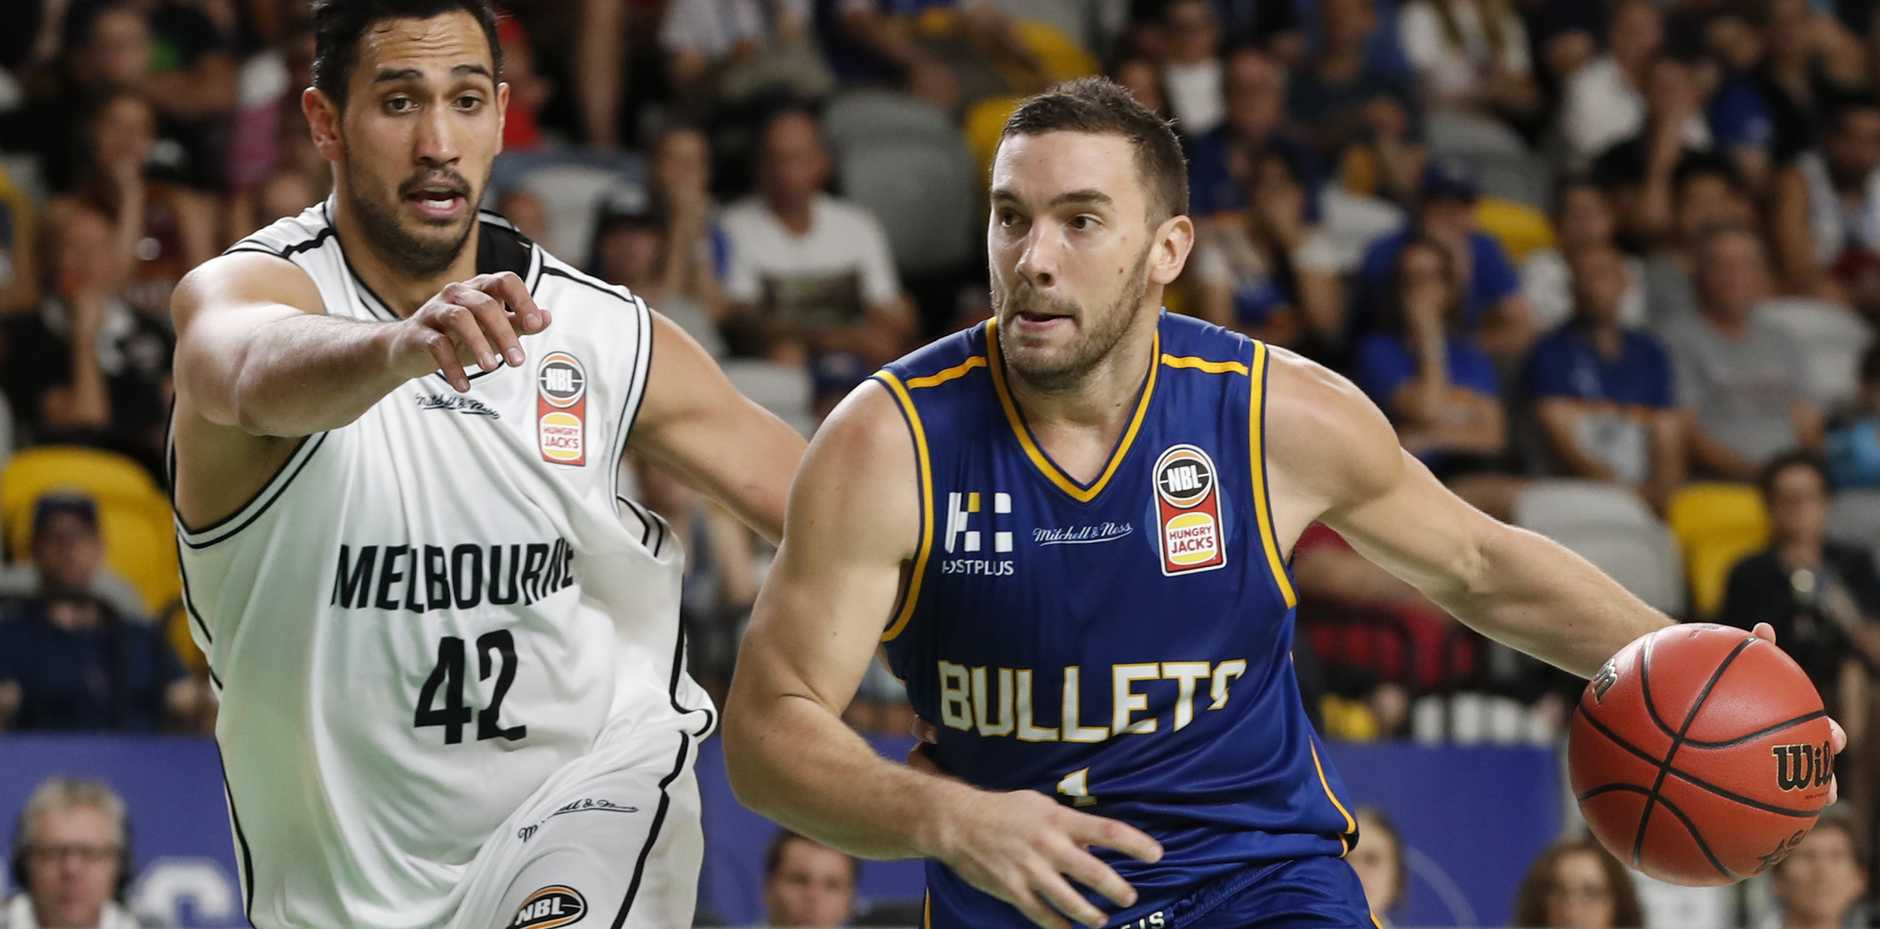 Adam Gibson (right) of Brisbane Bullets tries to dribble past Tai Wesley of Melbourne United.